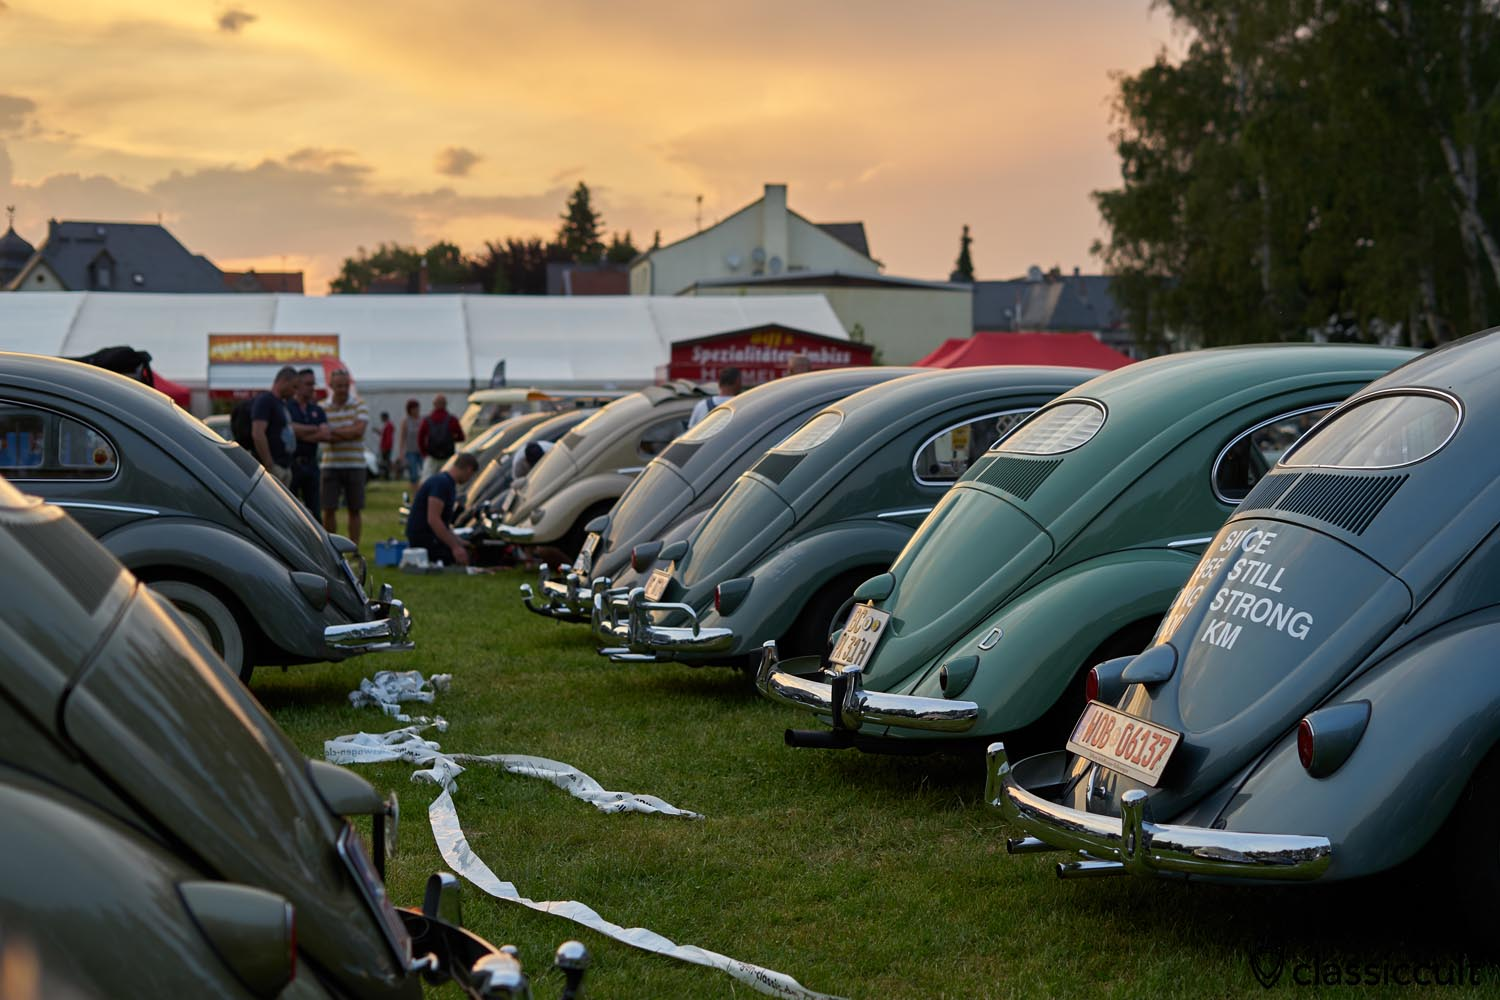 Bad Camberg VW Meeting 2019